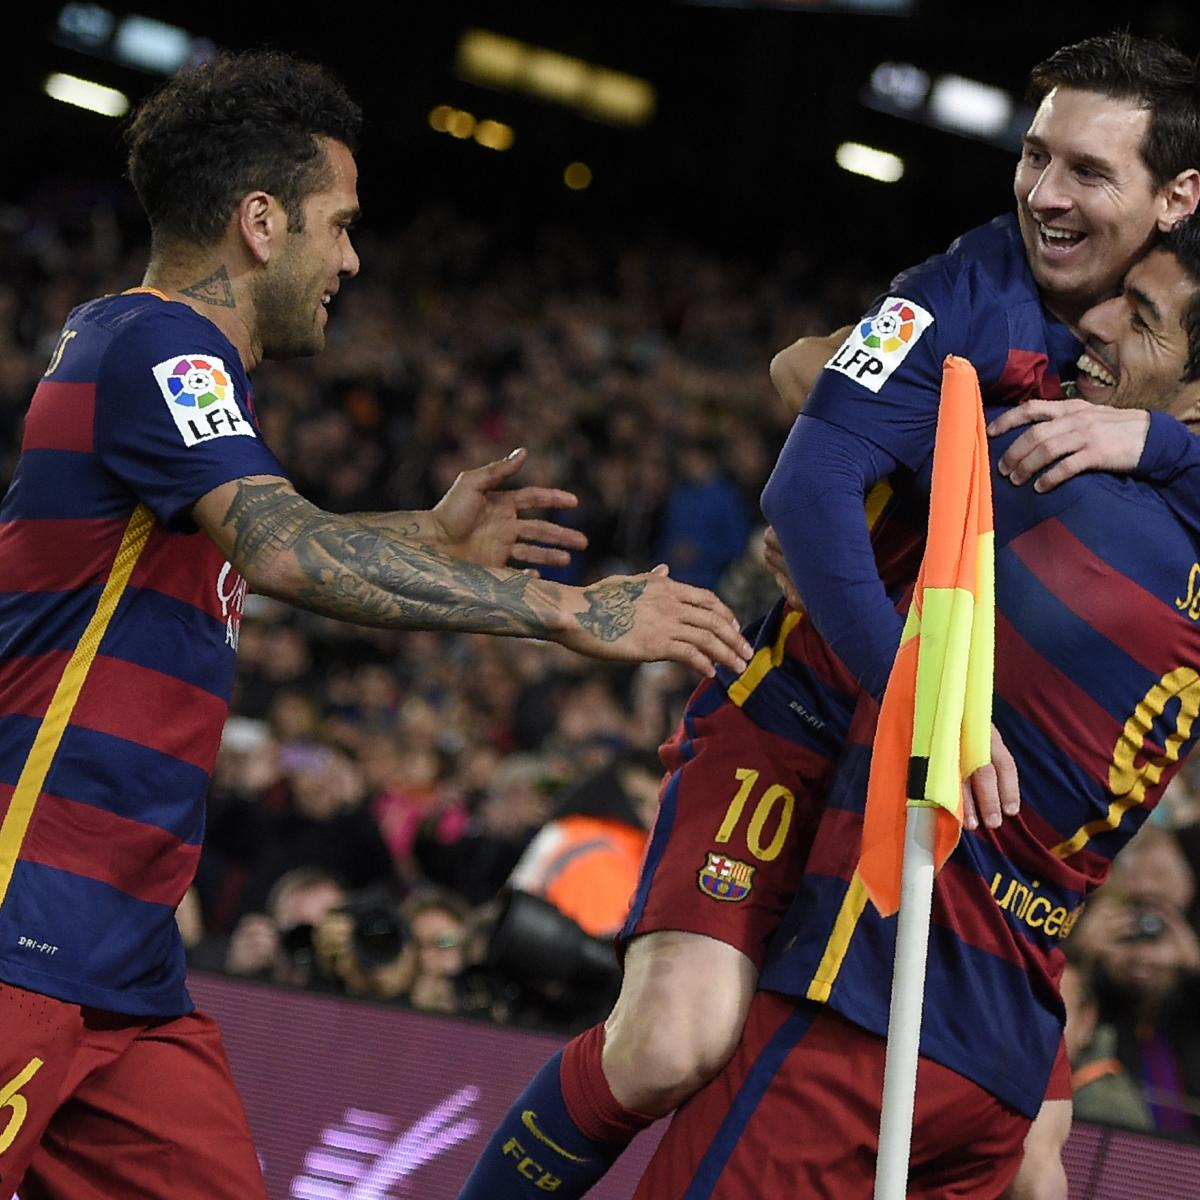 Barcelona Vs. Celta Vigo: Score, Reaction From 2016 La